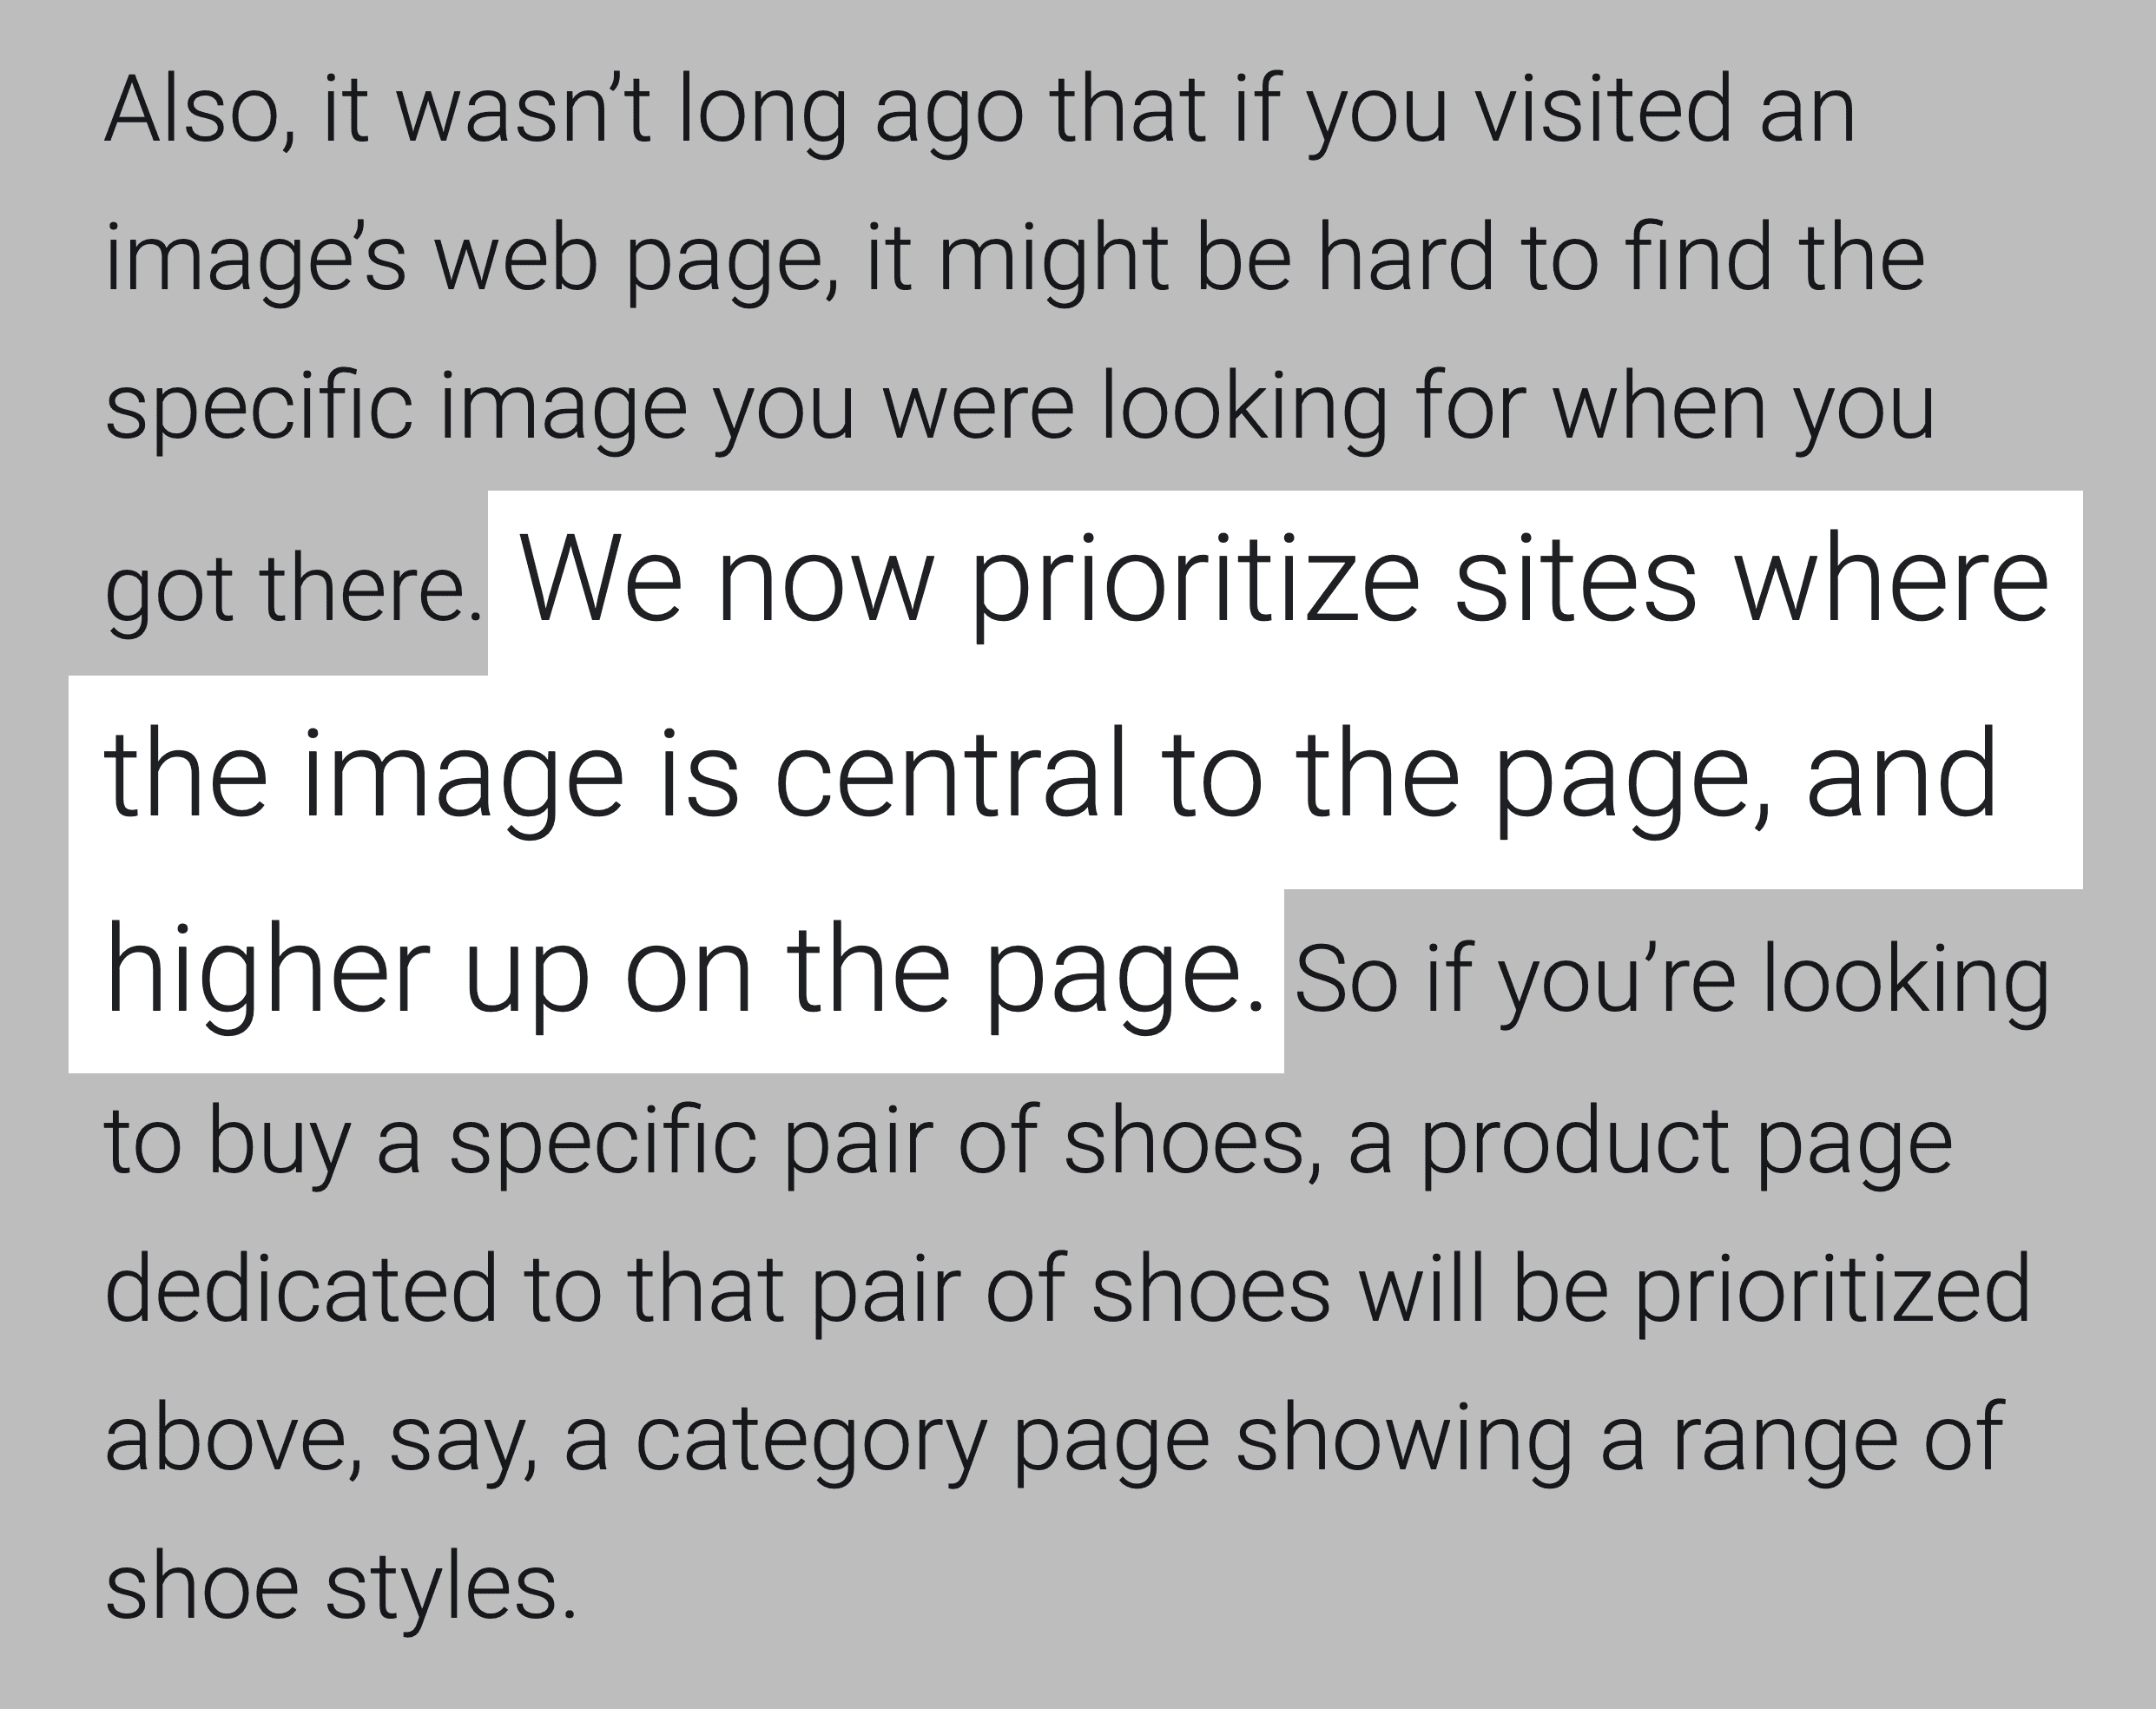 Google Algorithm Prioritizes Images High On Page